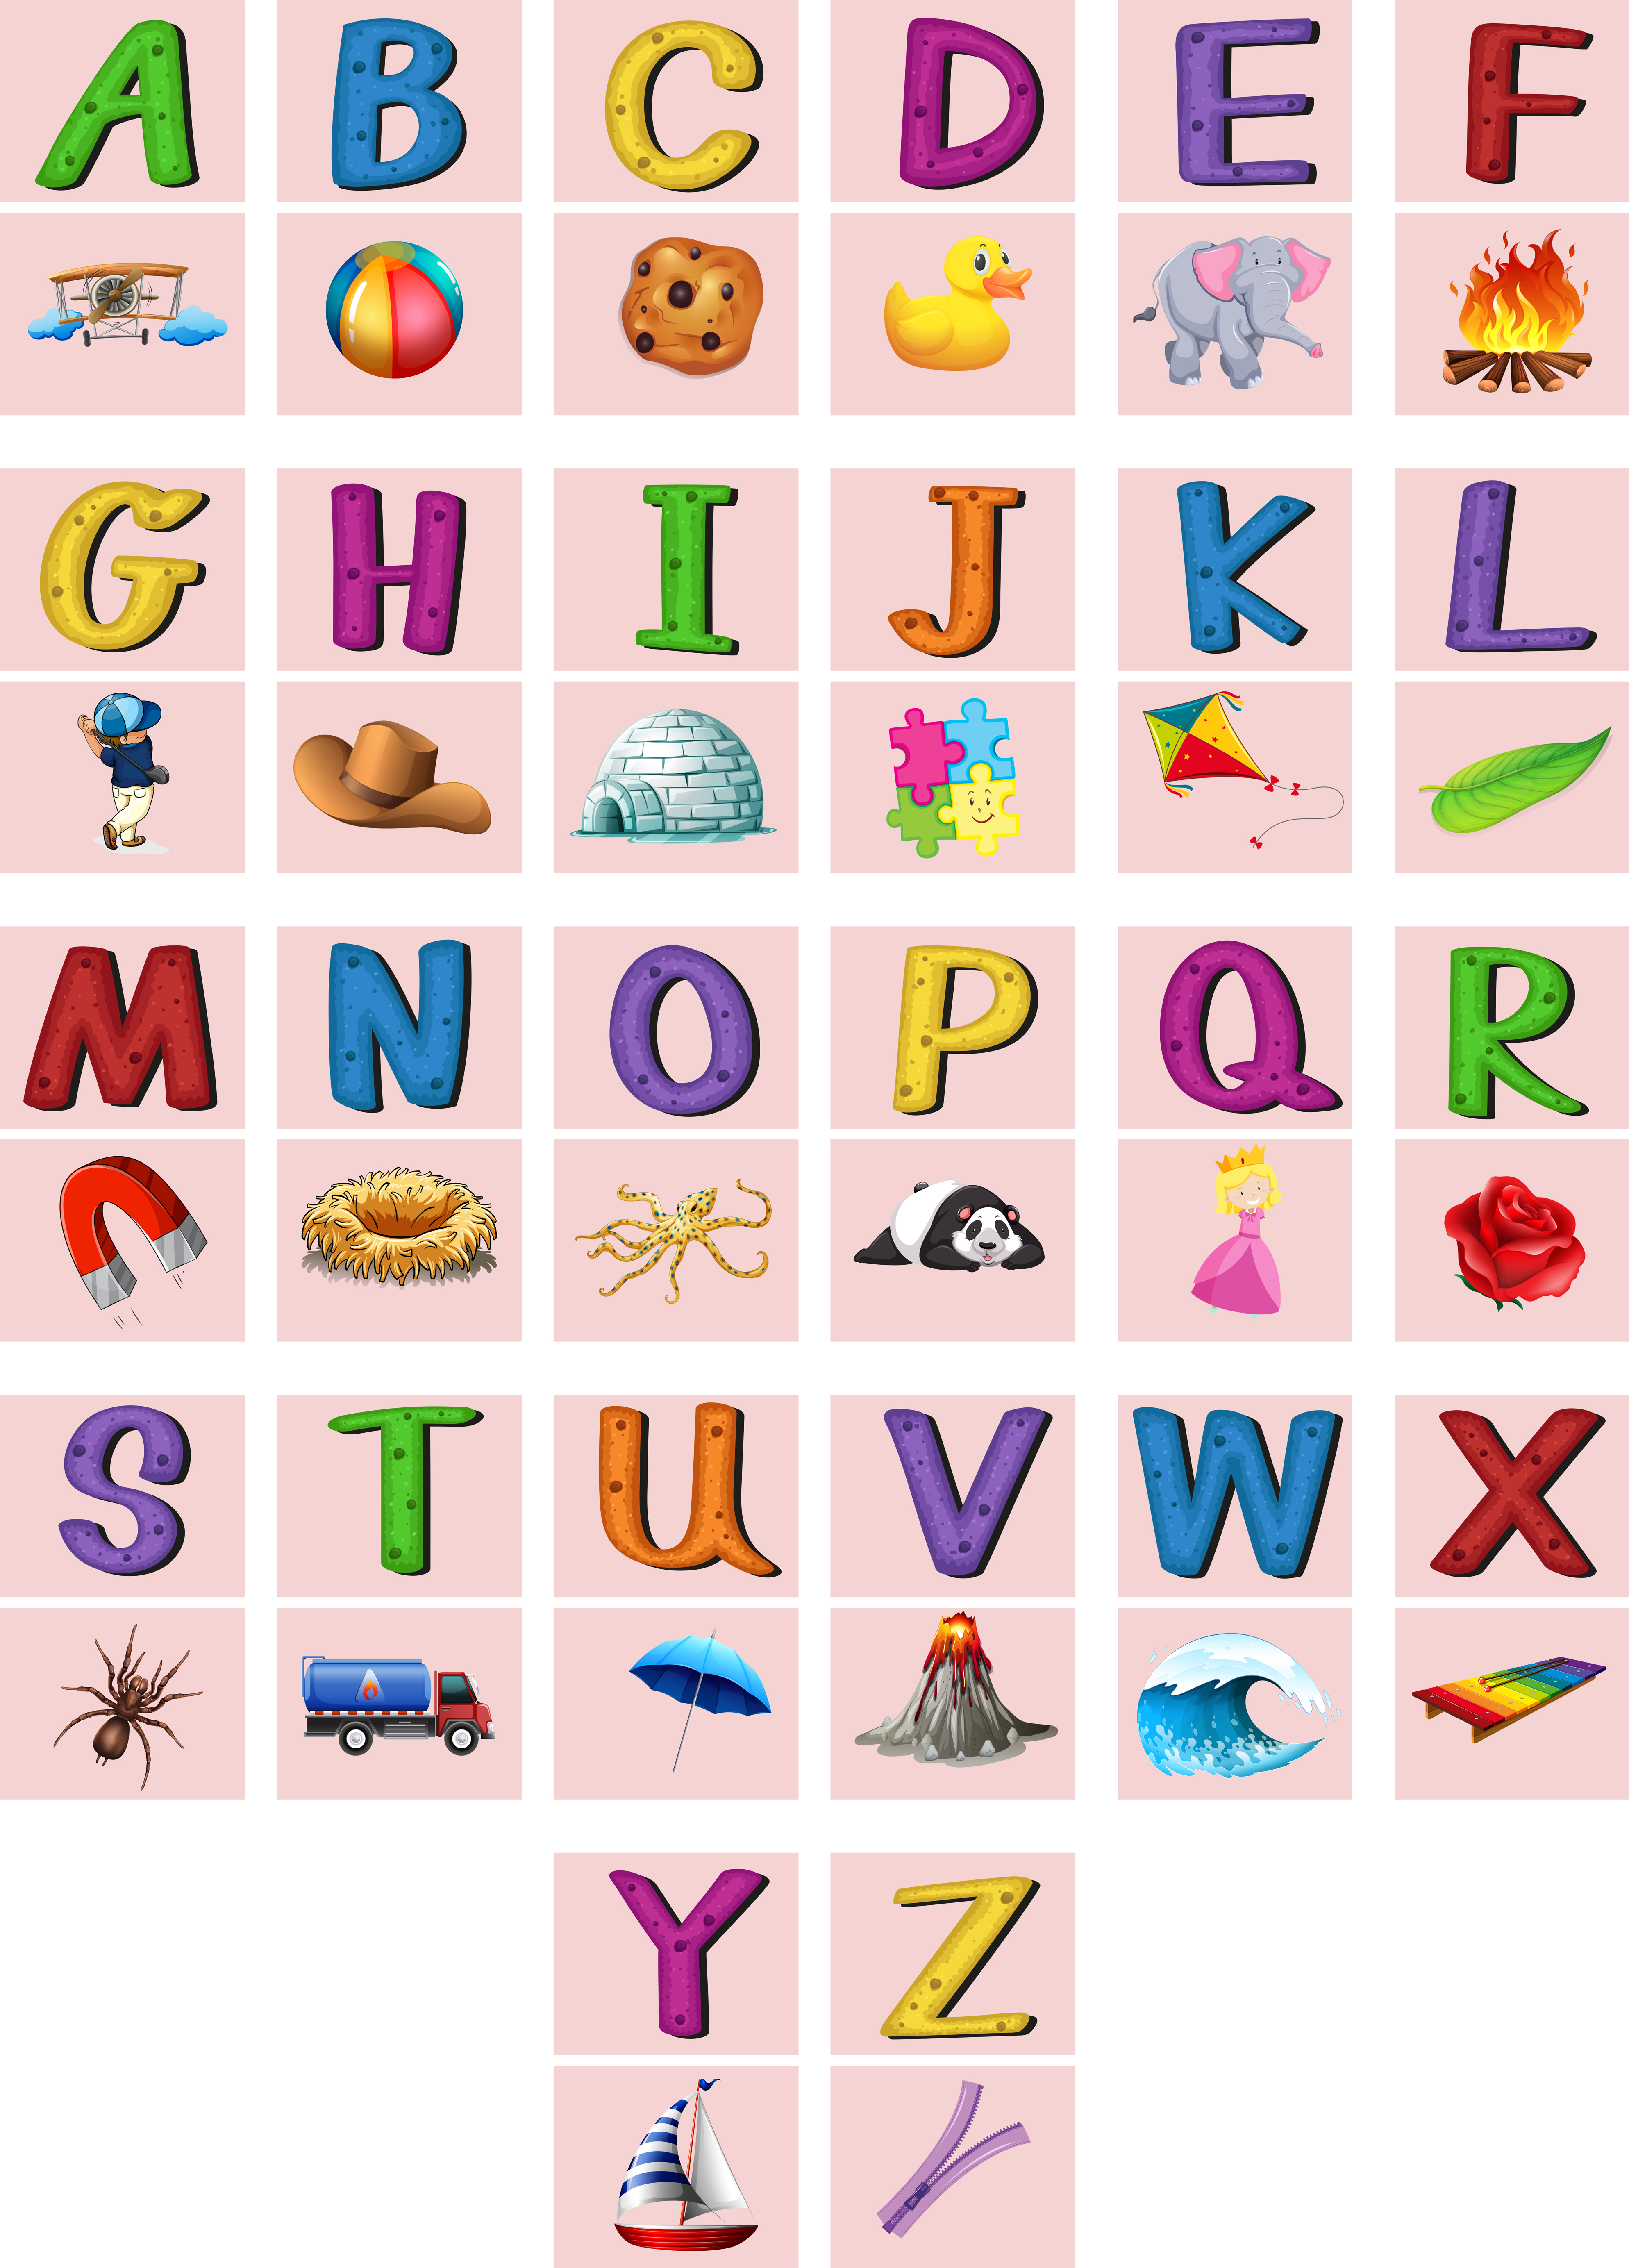 English alphabets A to Z with pictures - Download Free Vectors, Clipart  Graphics & Vector Art